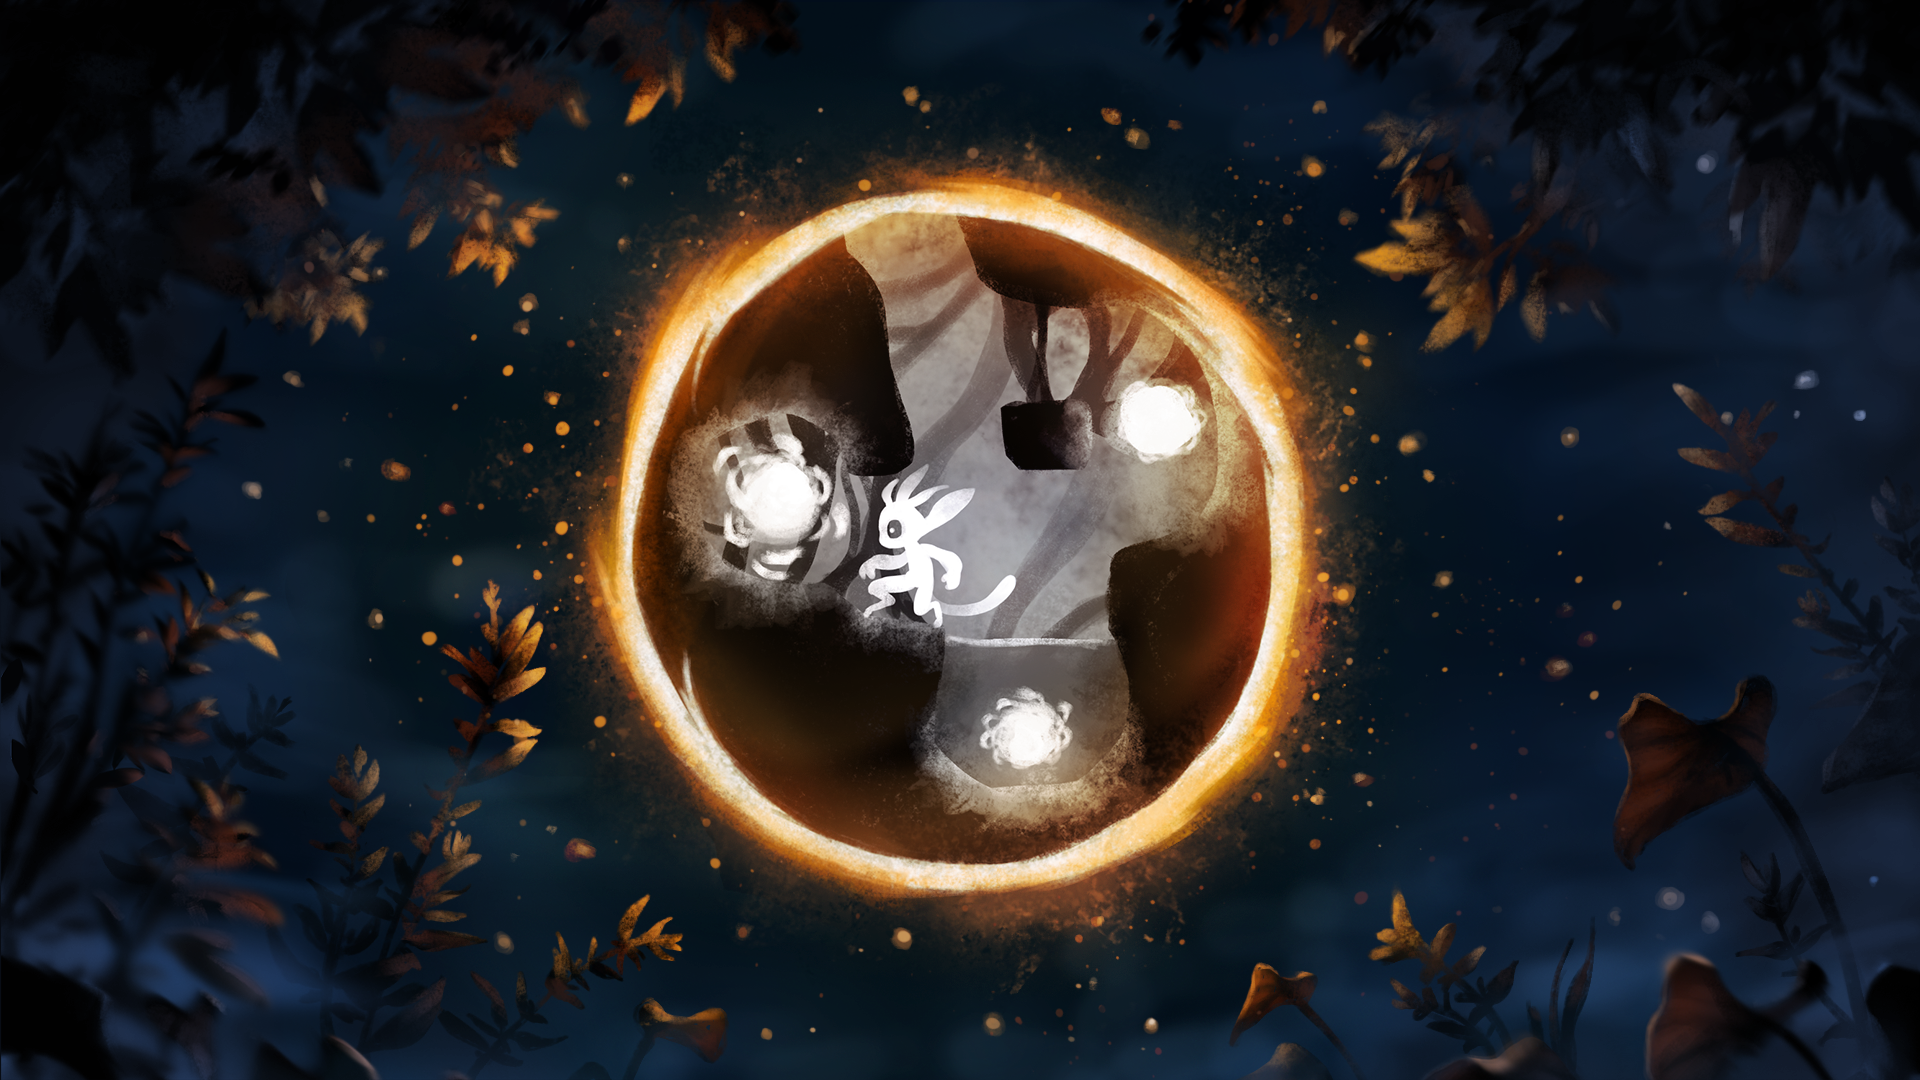 No stone unturned achievement for Ori and the Blind Forest on Nintendo Switch